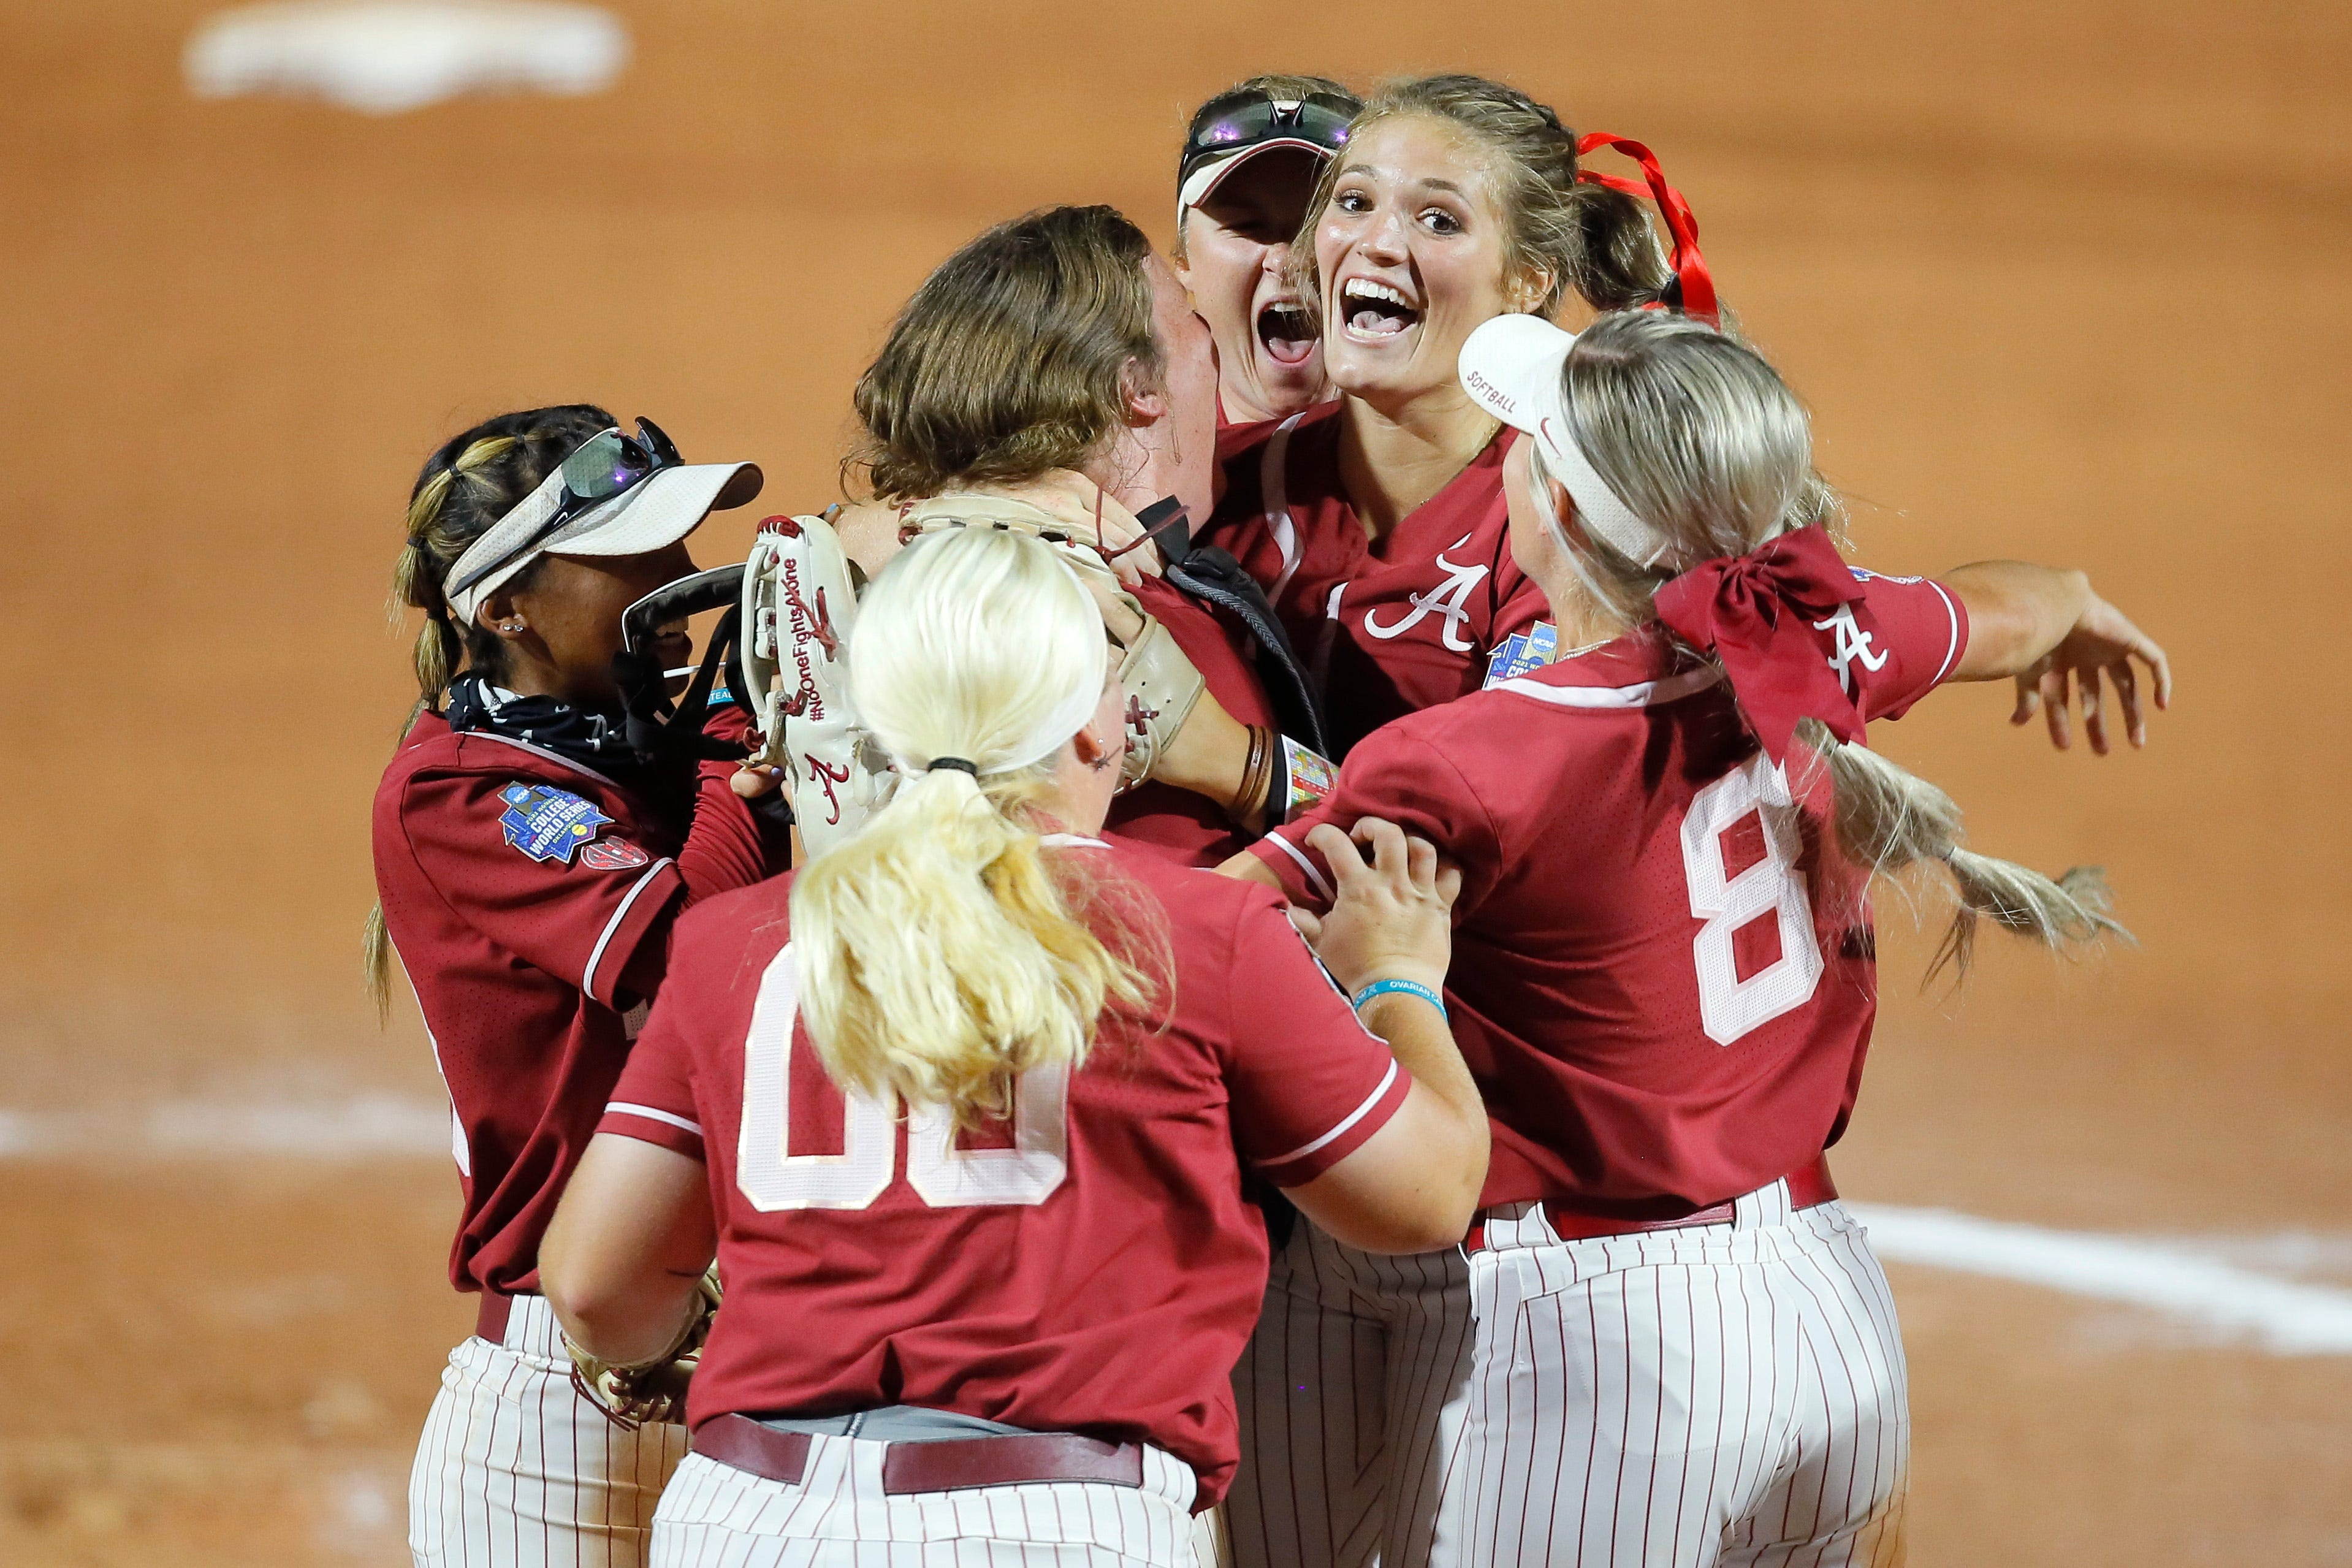 Courtney Blades-Rogers impressed by Alabama's Montana Fouts, 21 years after her own perfect game